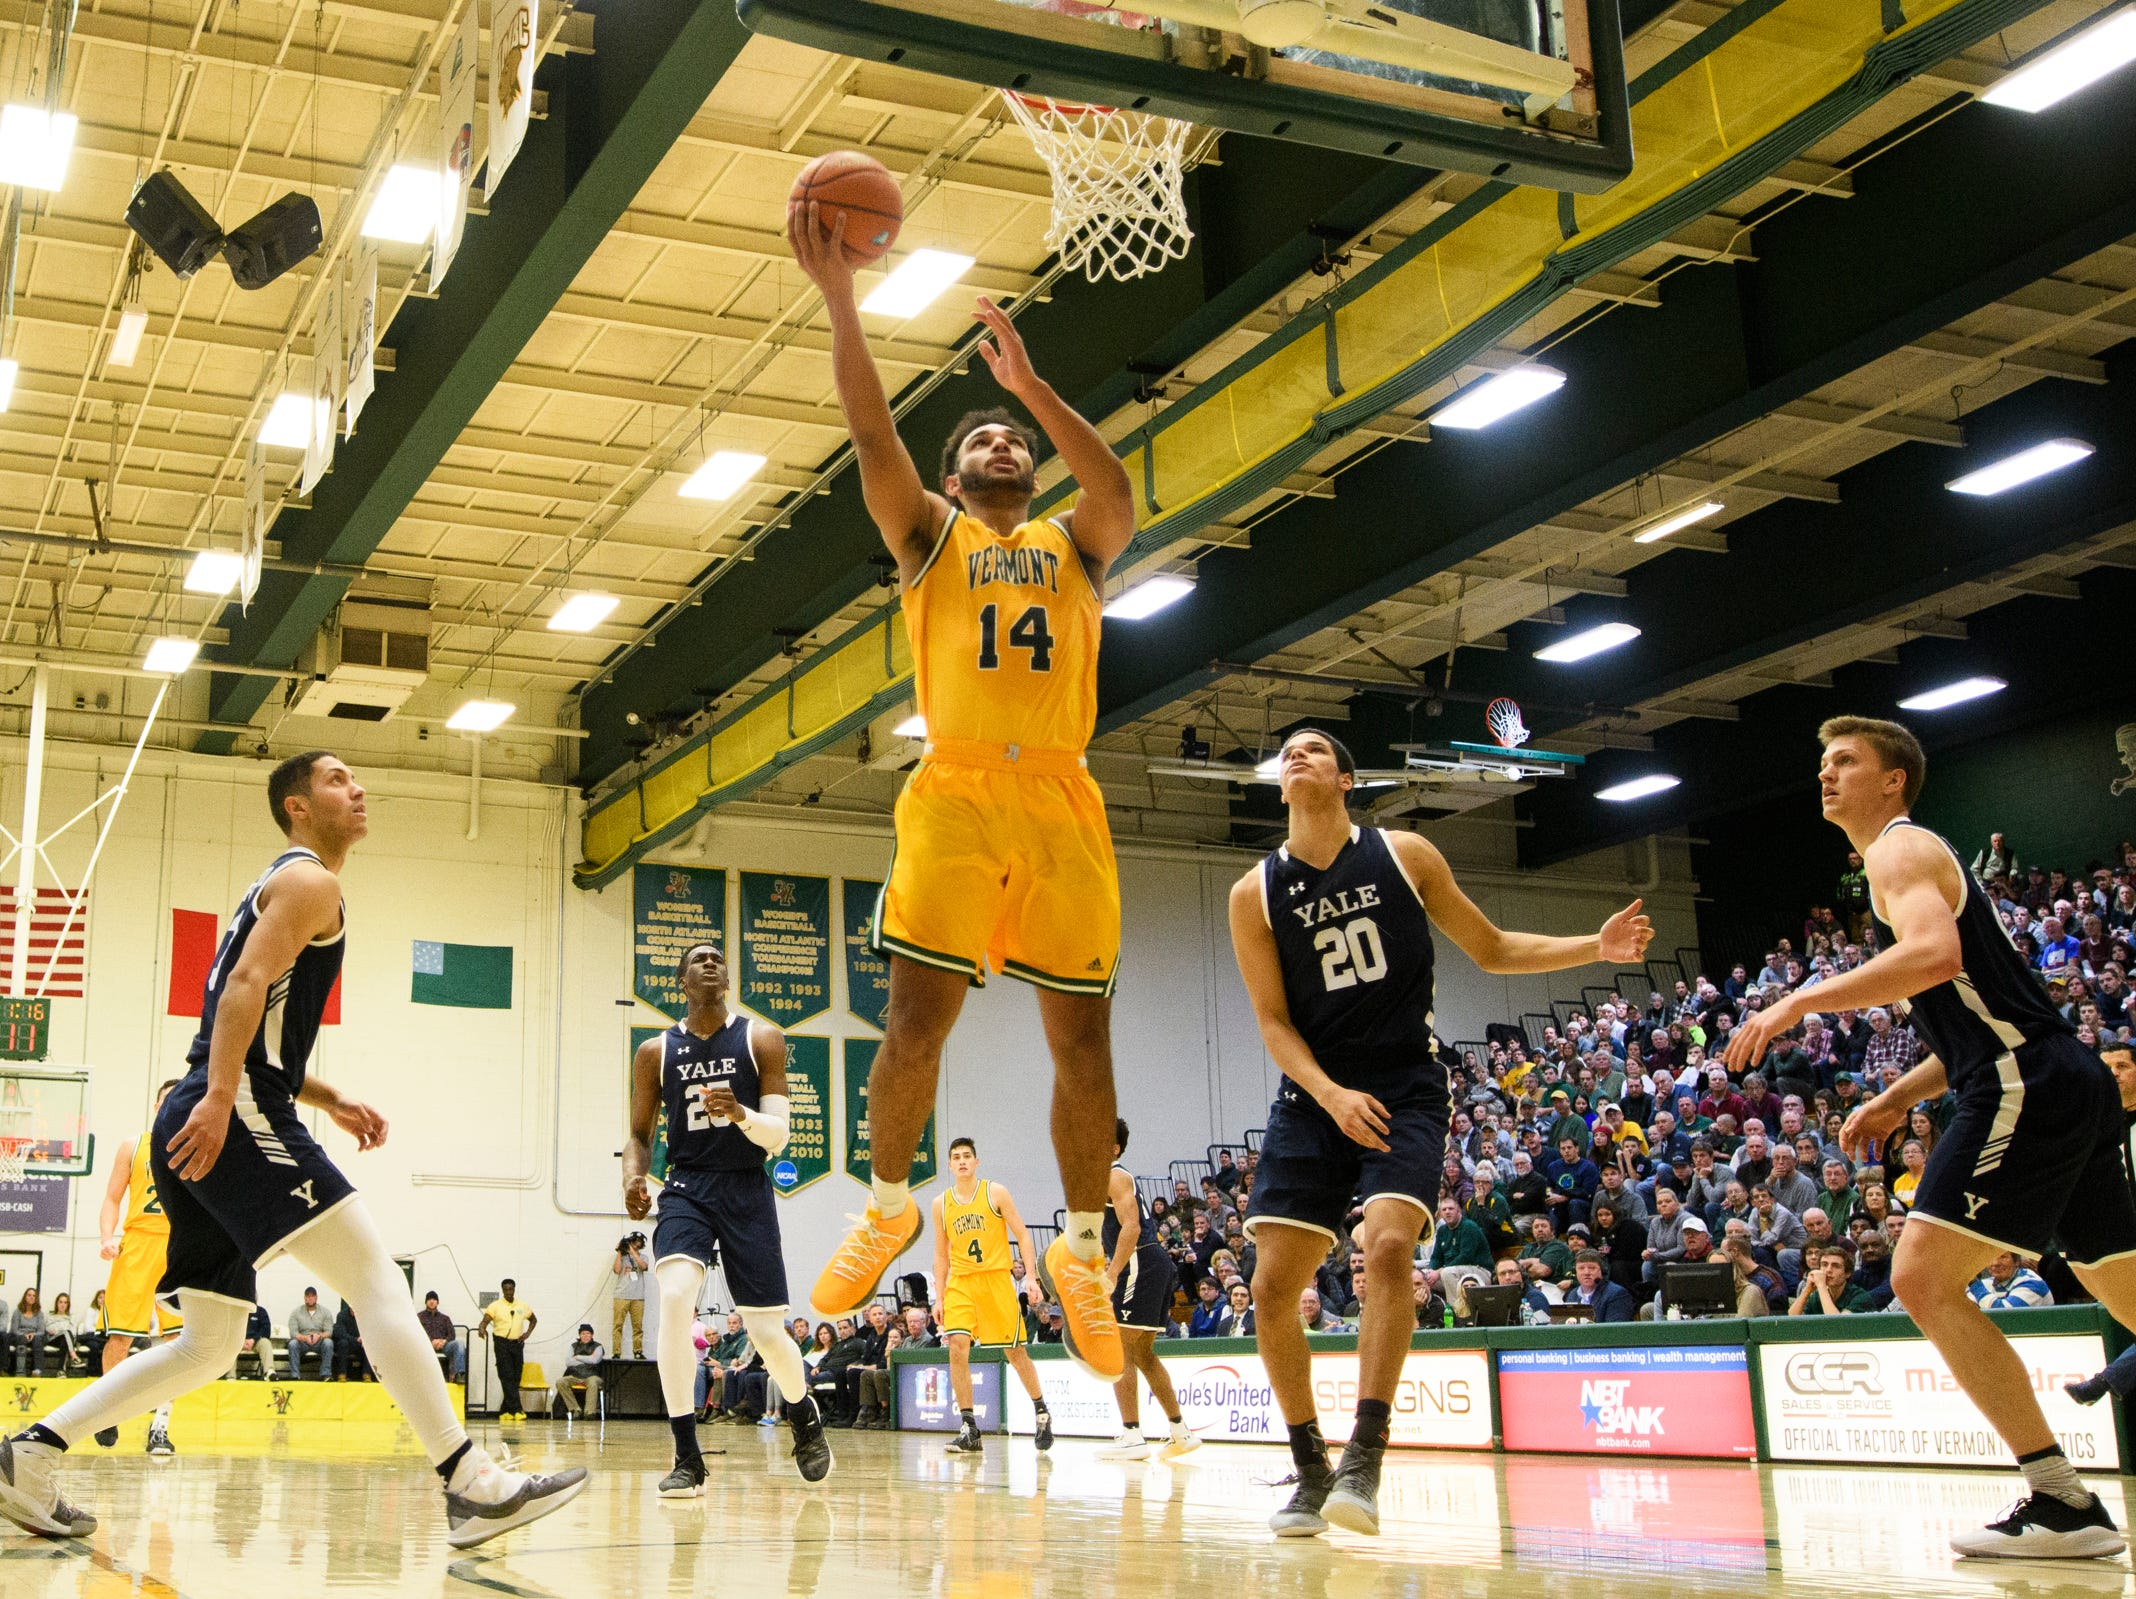 Vermont forward Isaiah Moll (14) leaps for a lay up during the men's basketball game between the Yale Bulldogs and the Vermont Catamounts at Patrick Gym on Wednesday night November 21, 2018 in Burlington.